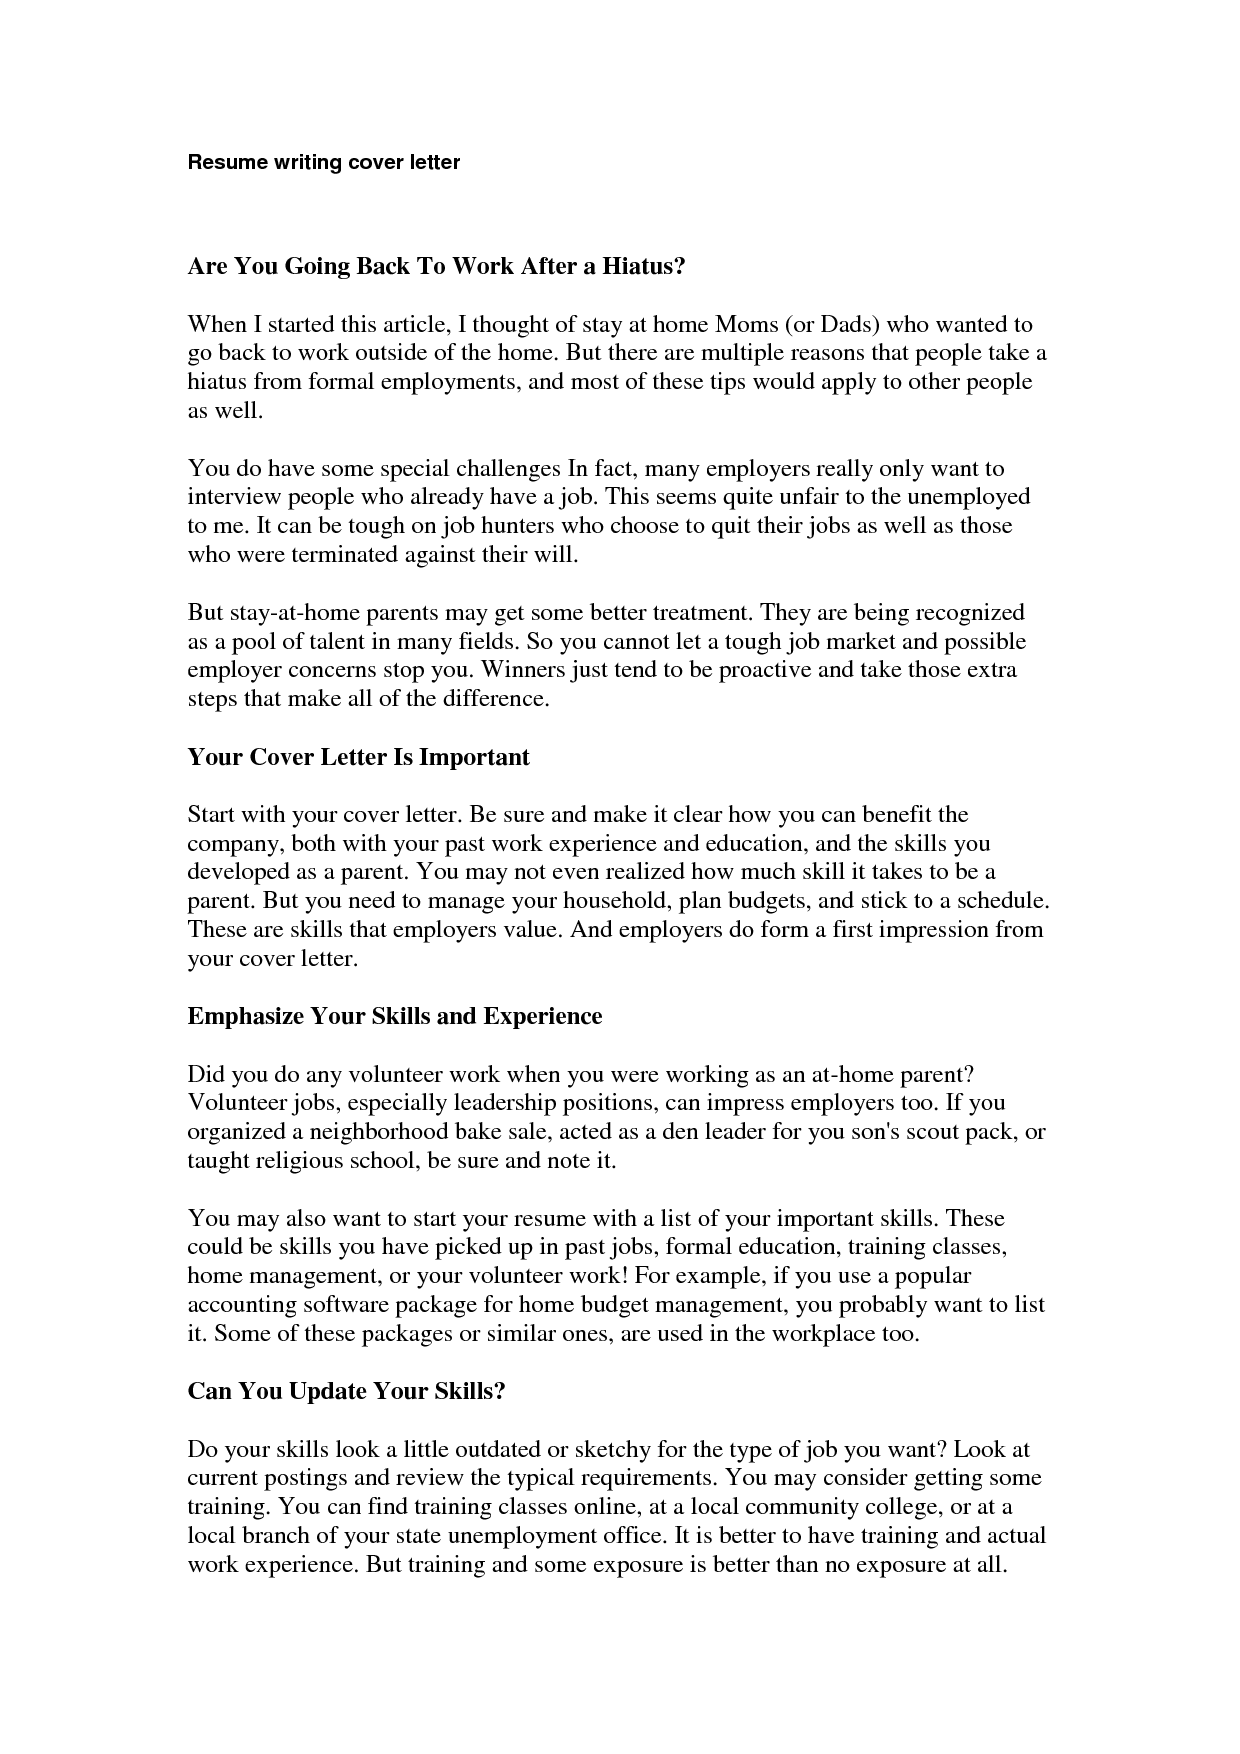 Cover Letter For Volunteer Work In Schools  planner template free